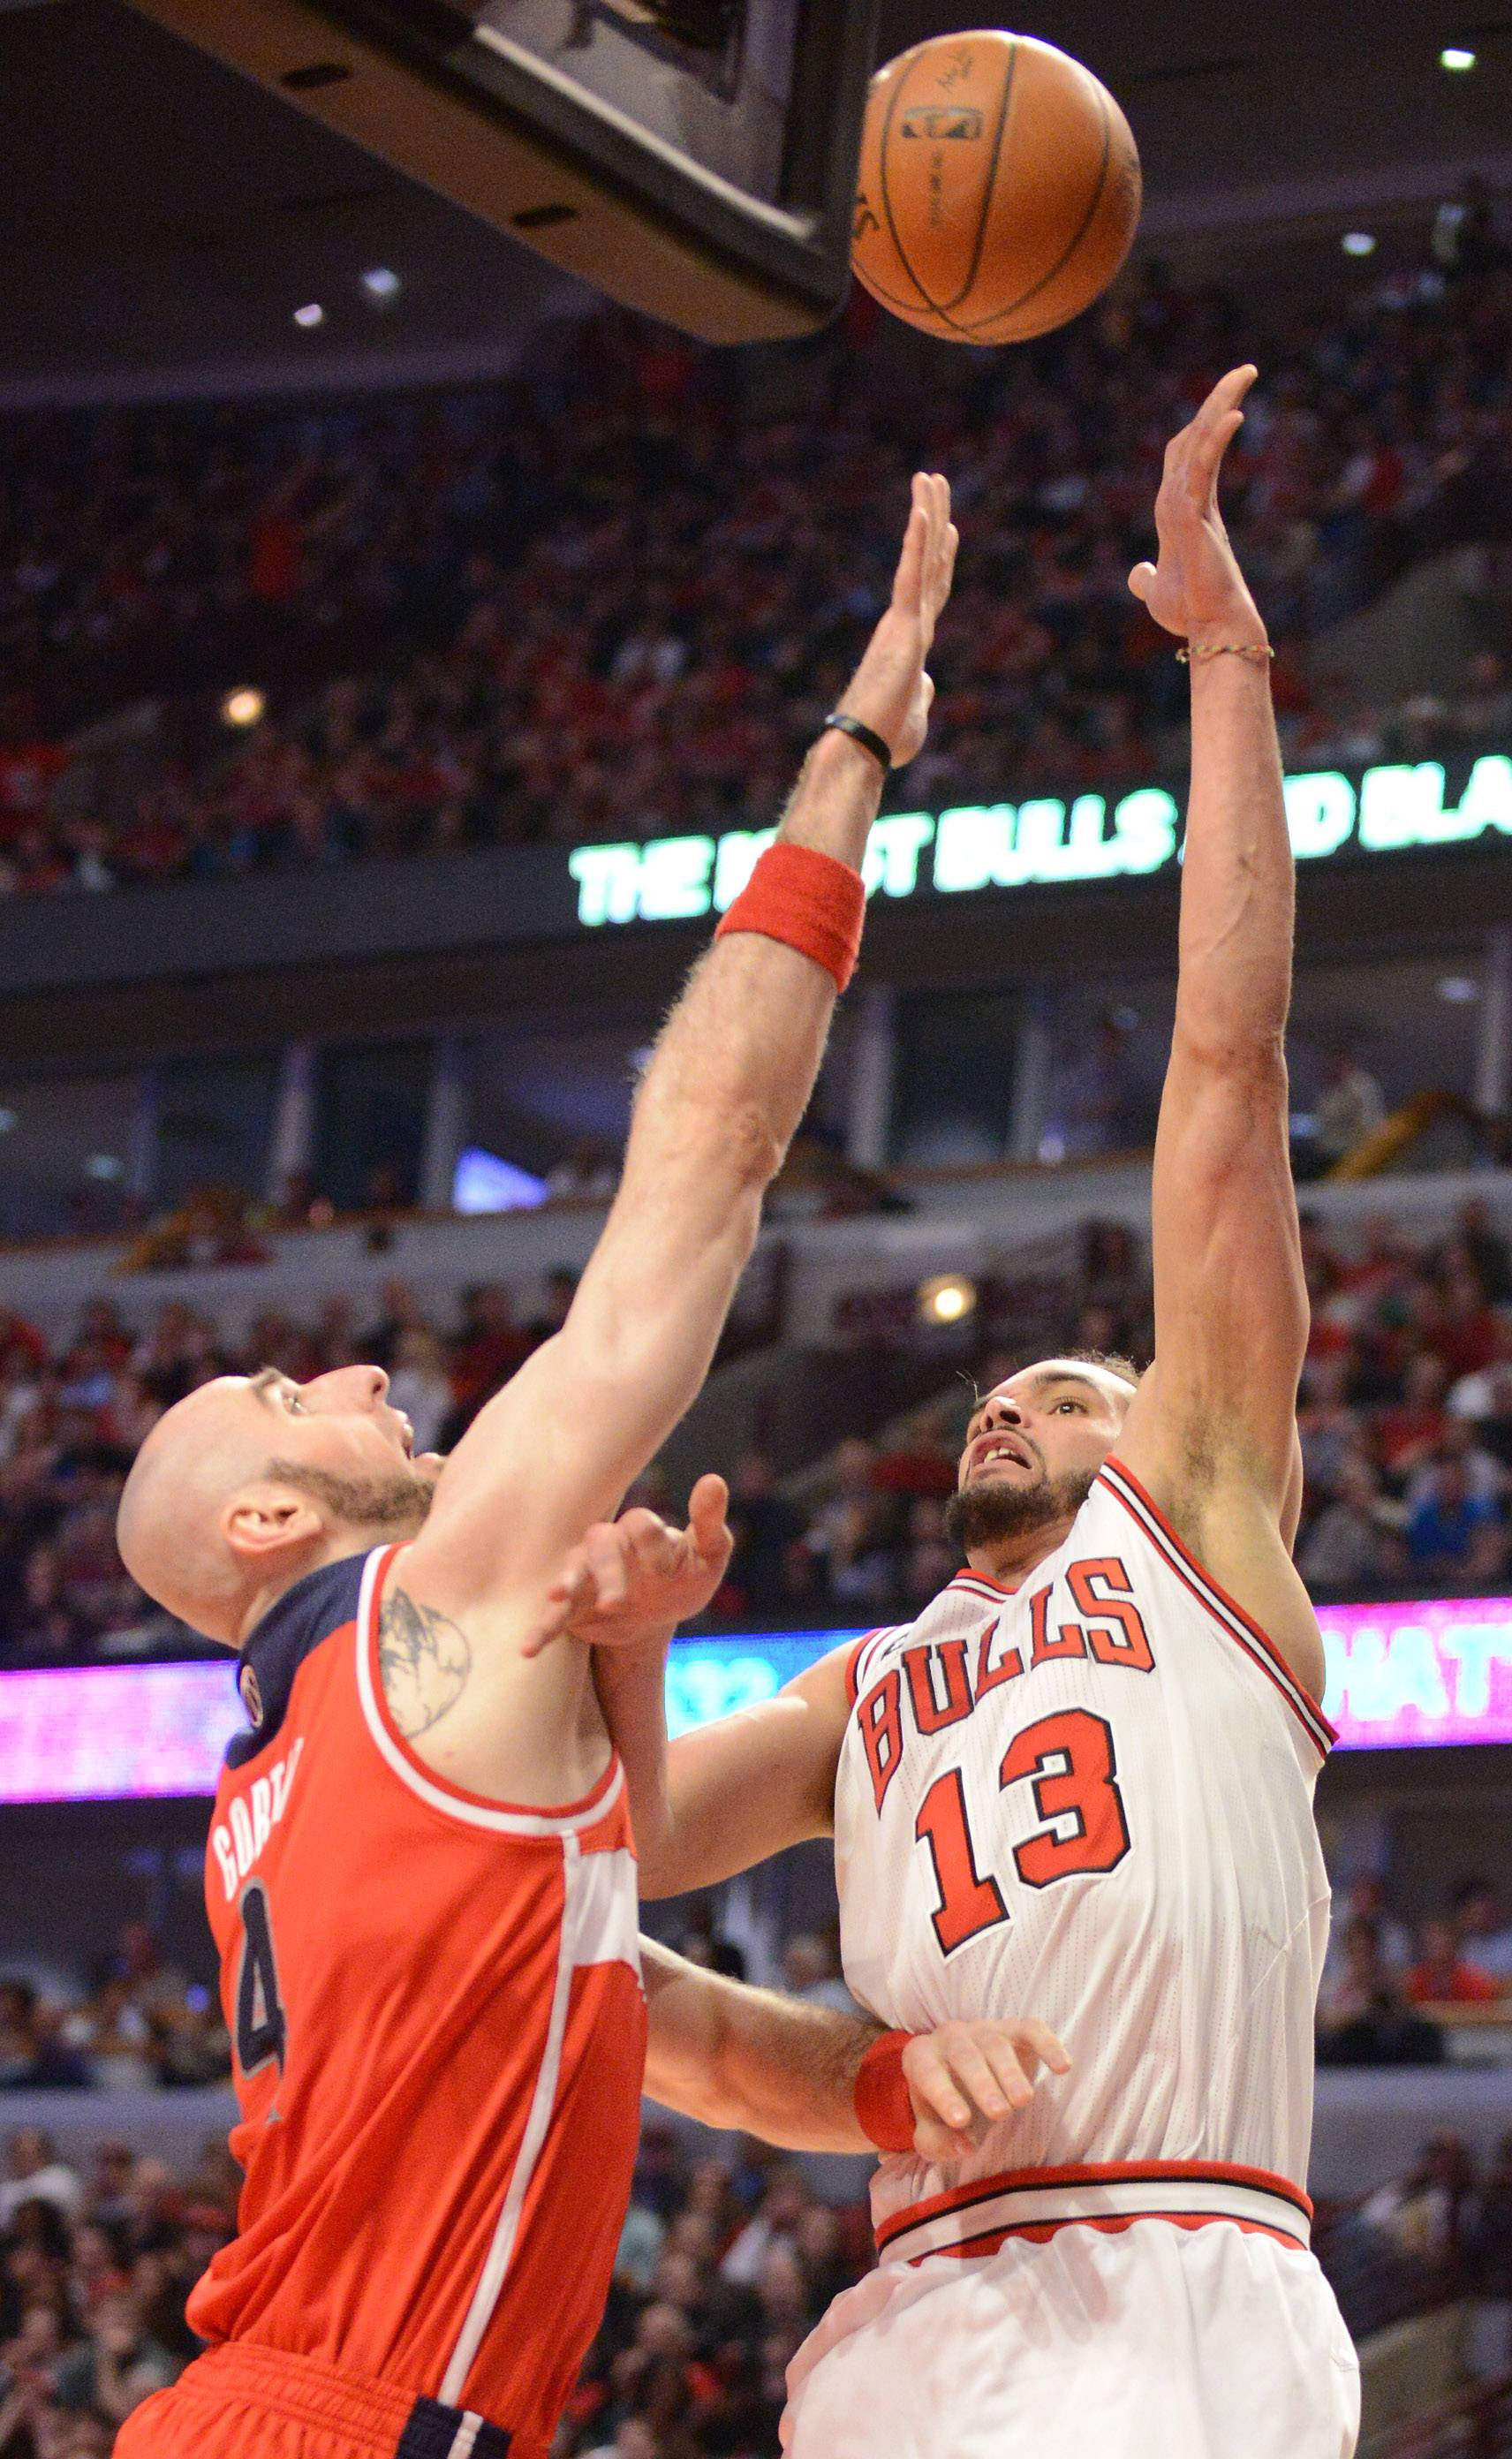 Chicago Bulls center Joakim Noah (13) shoots and scores over Washington Wizards center Marcin Gortat (4).